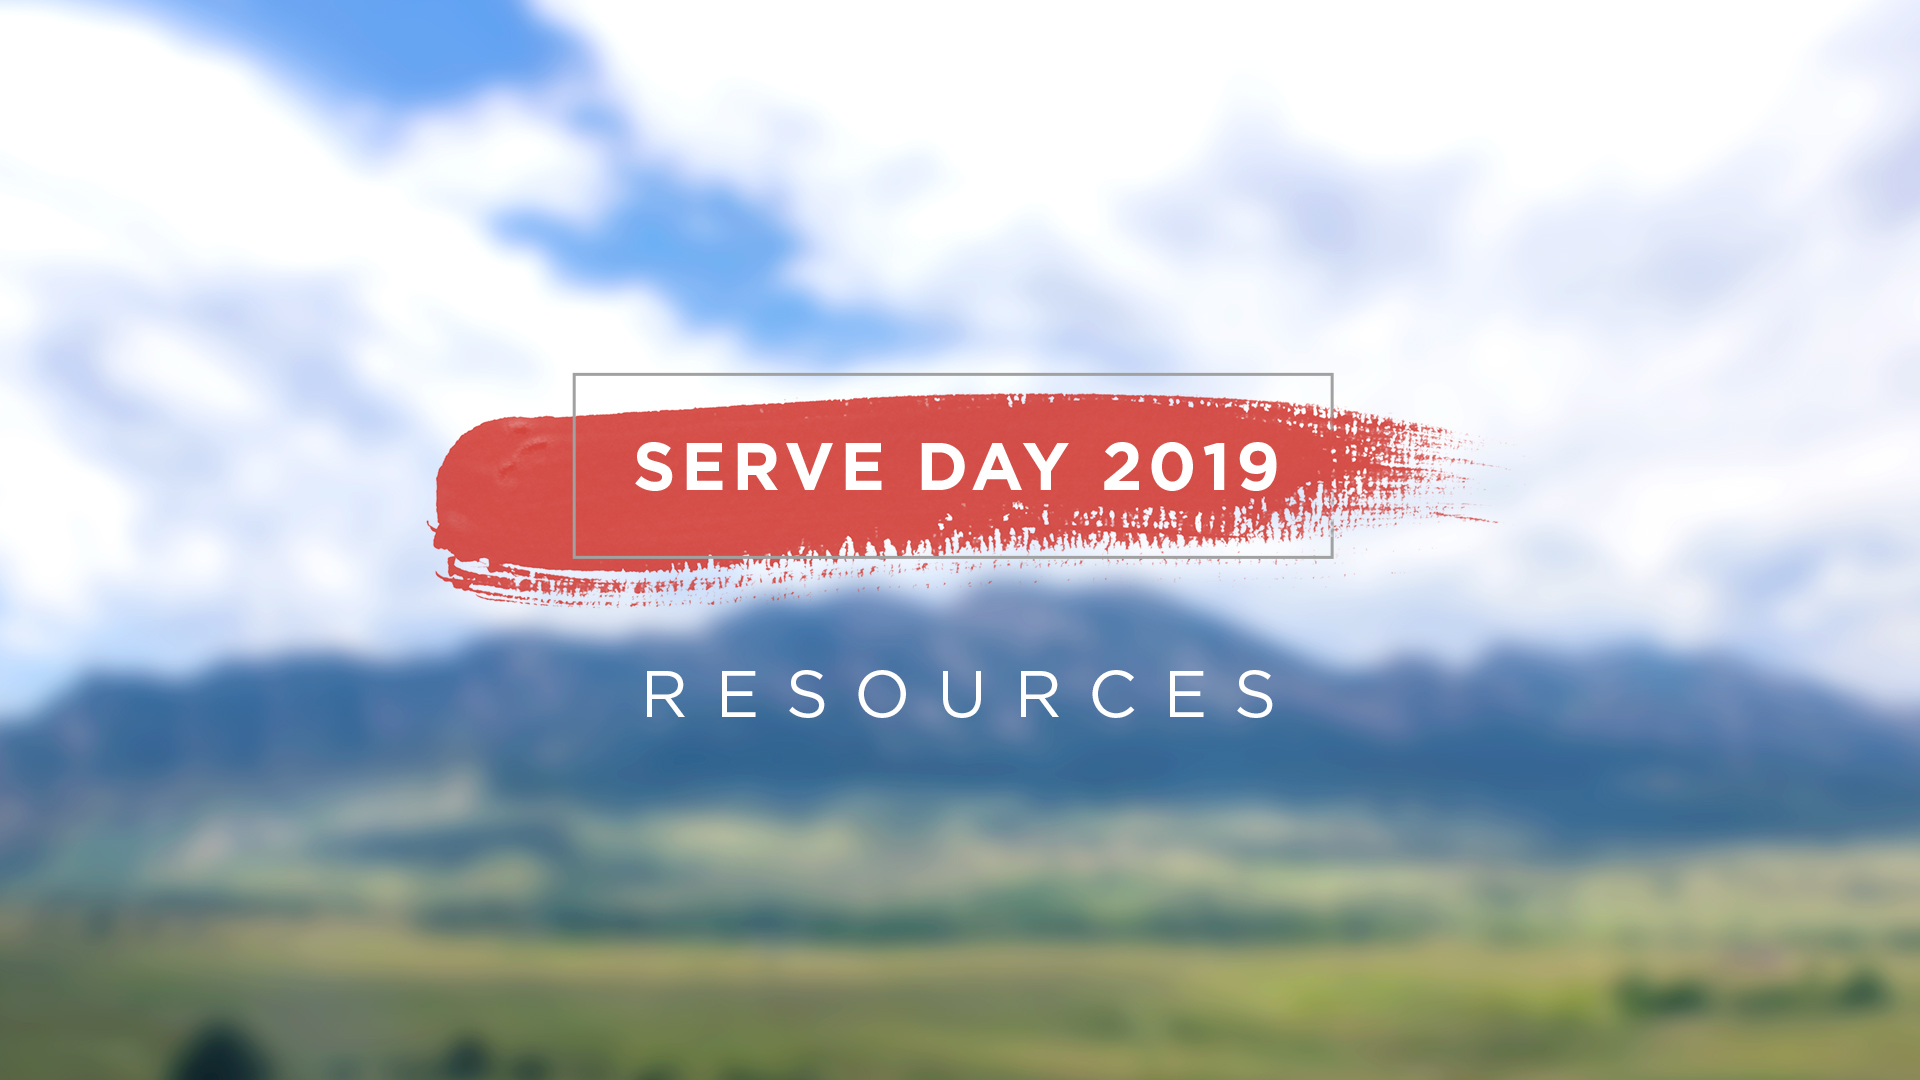 2019ServeDay-Resuorces.jpg